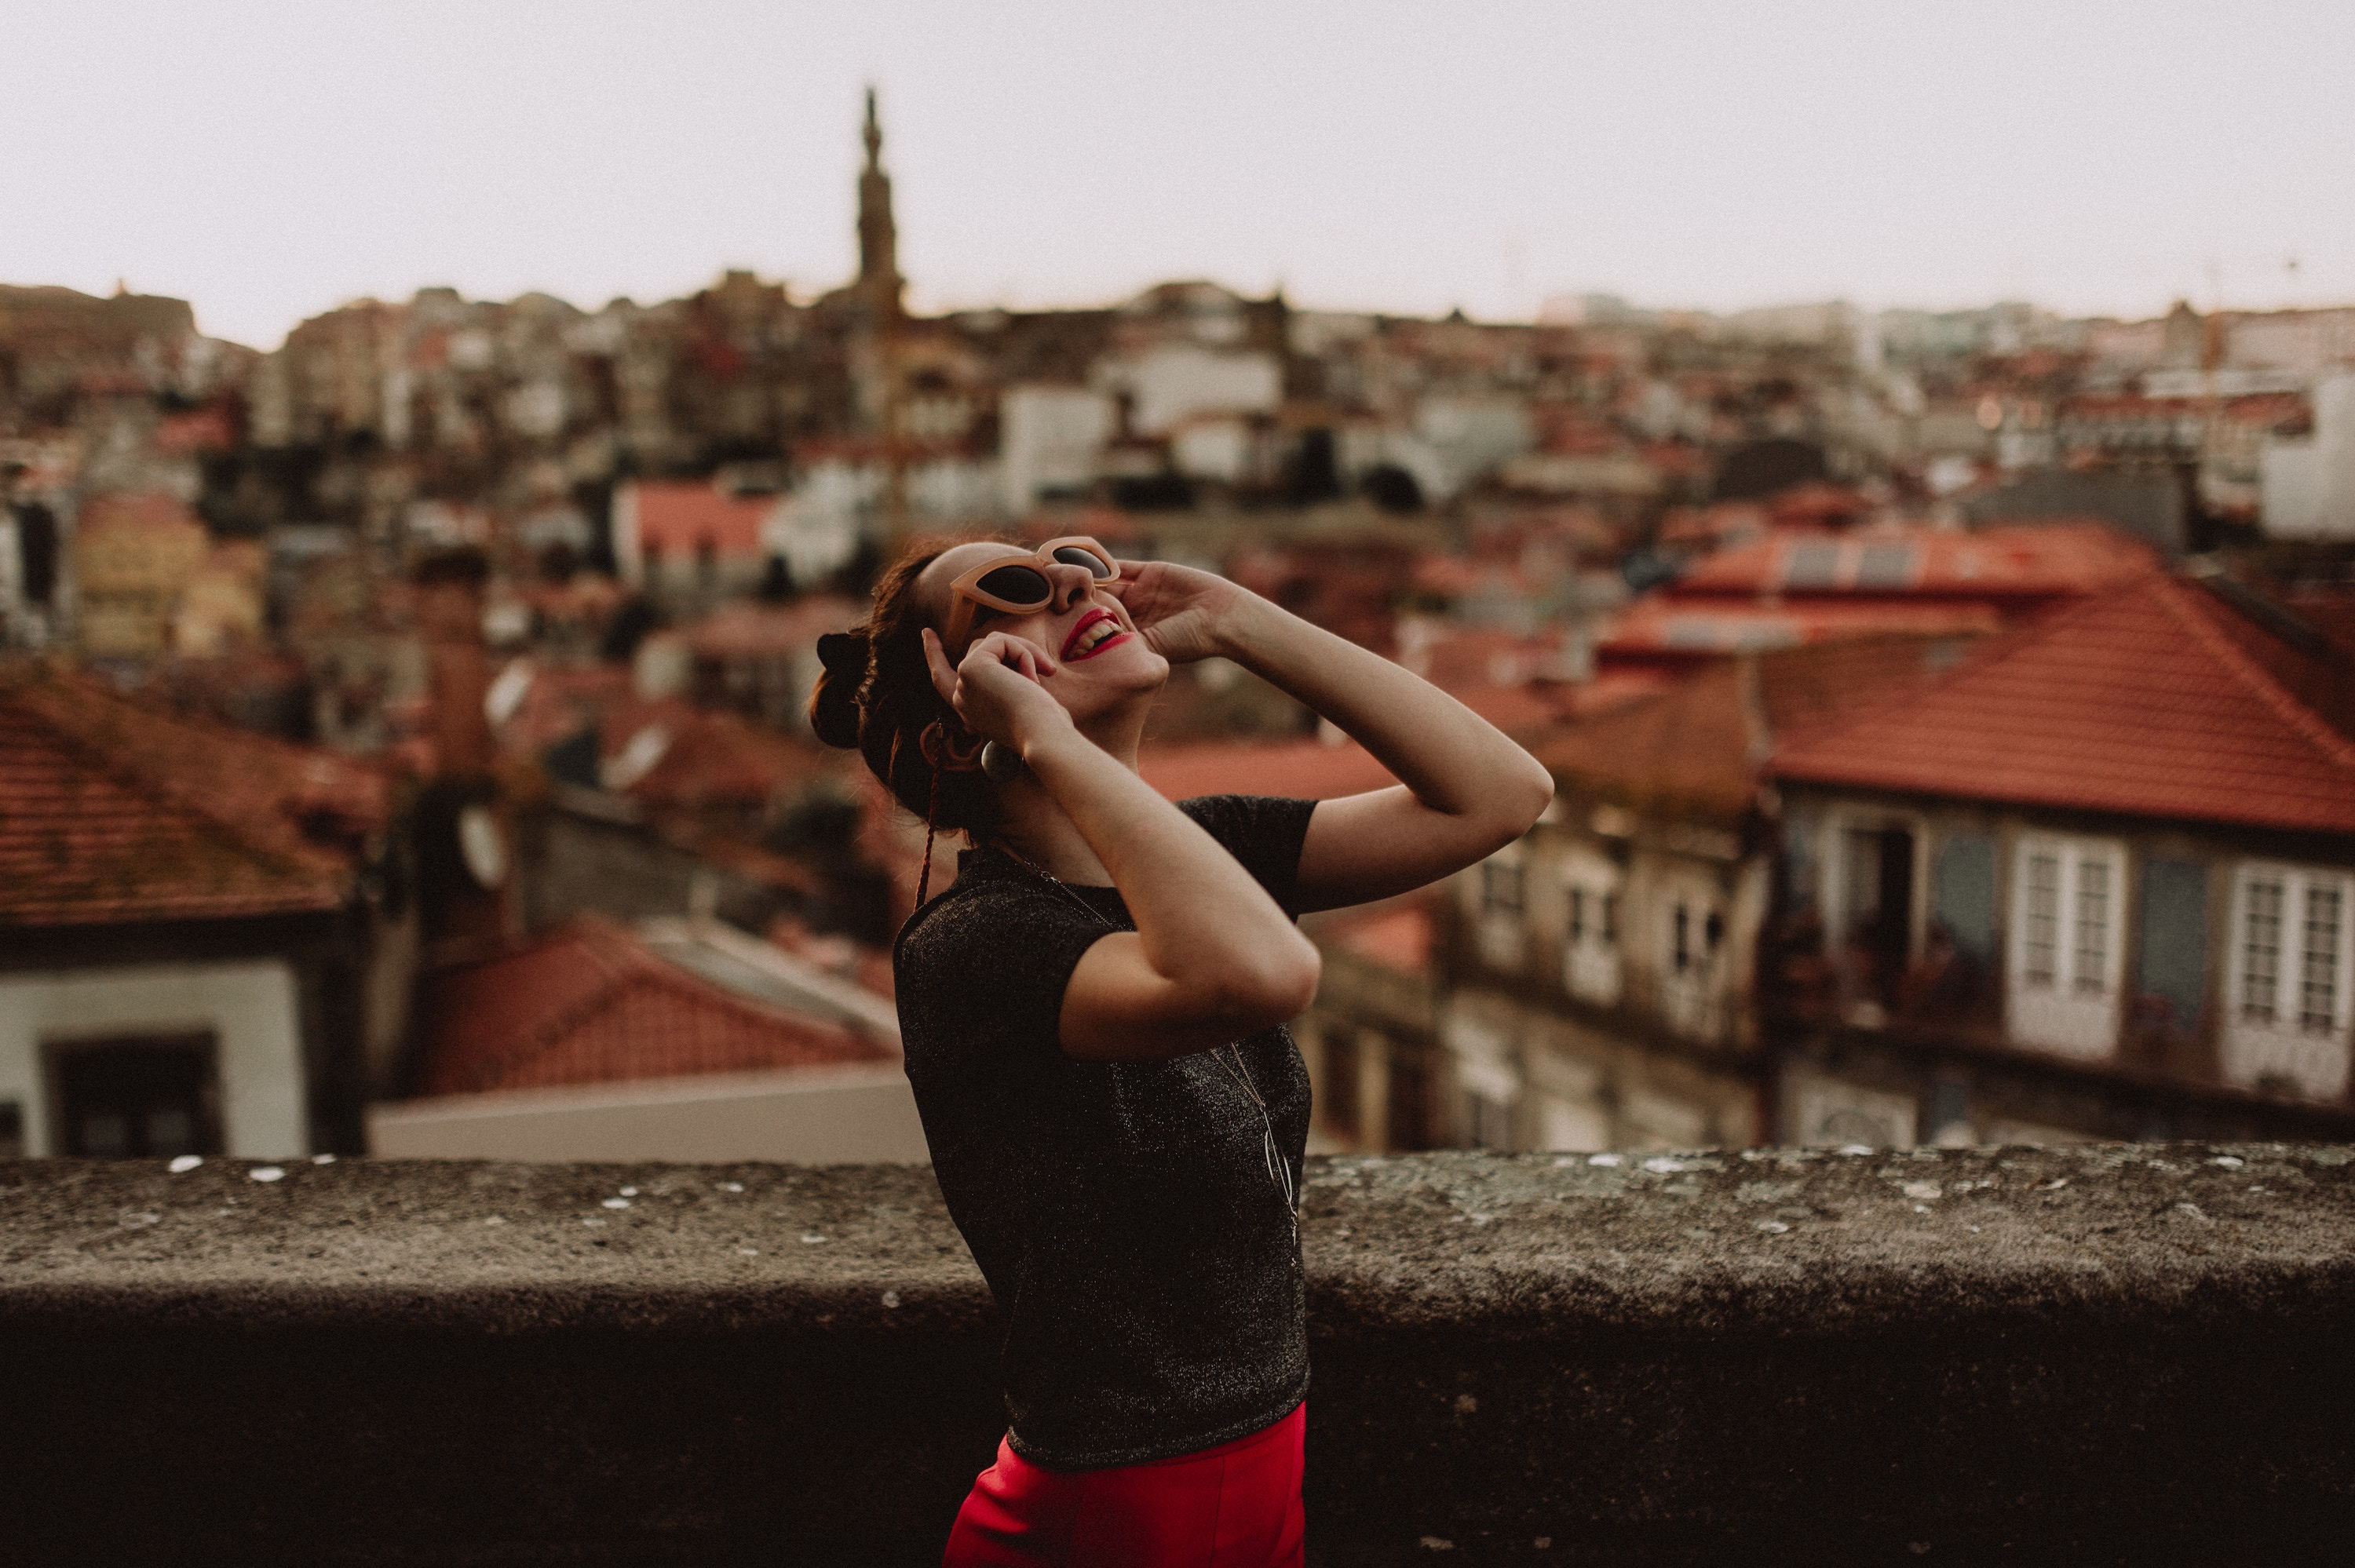 happy woman city kinga cichewicz unsplash